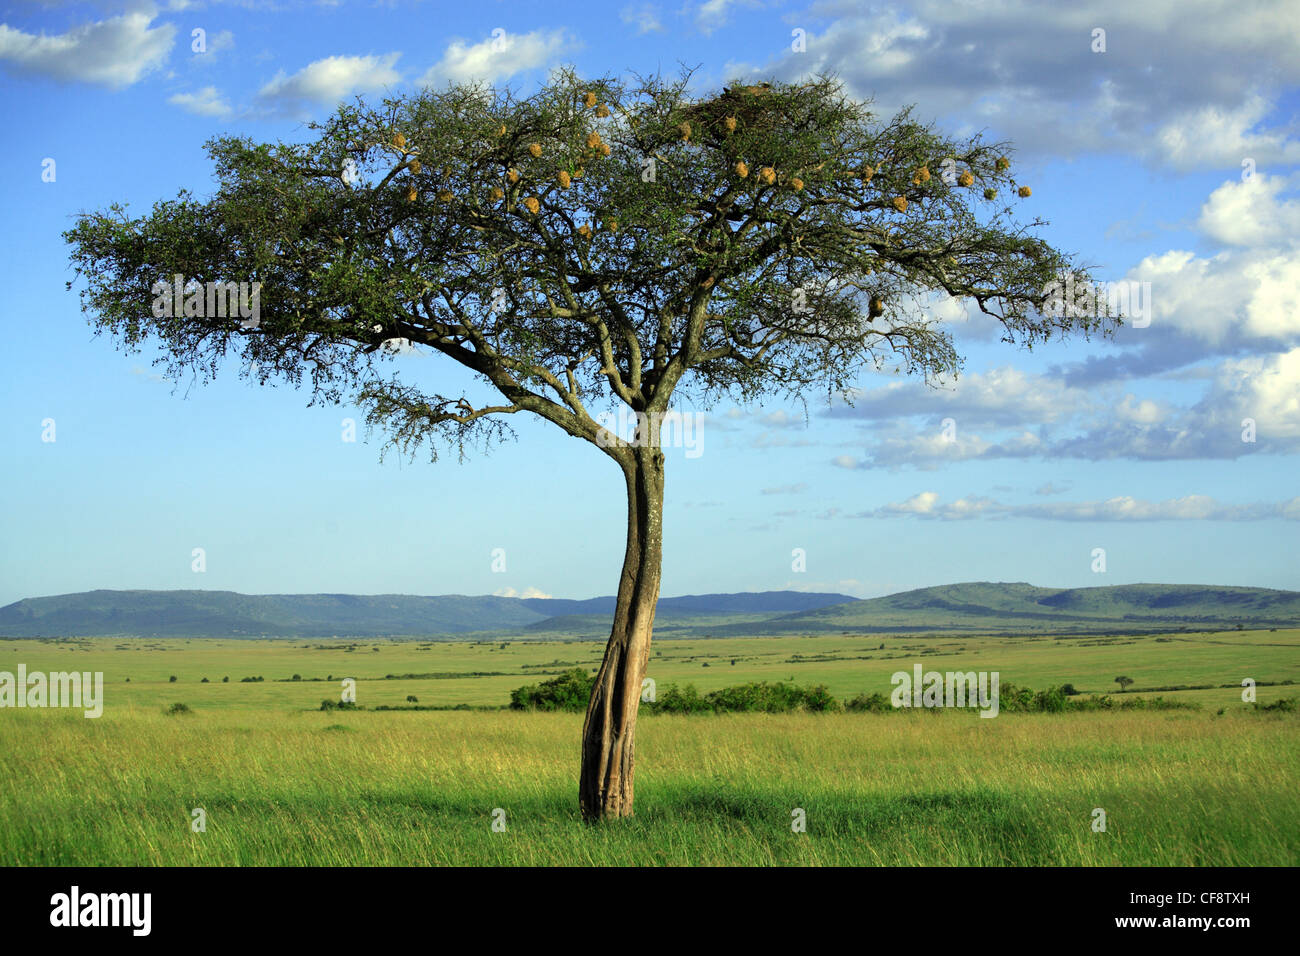 Singular tree in the Masai Mara National Reserve. - Stock Image